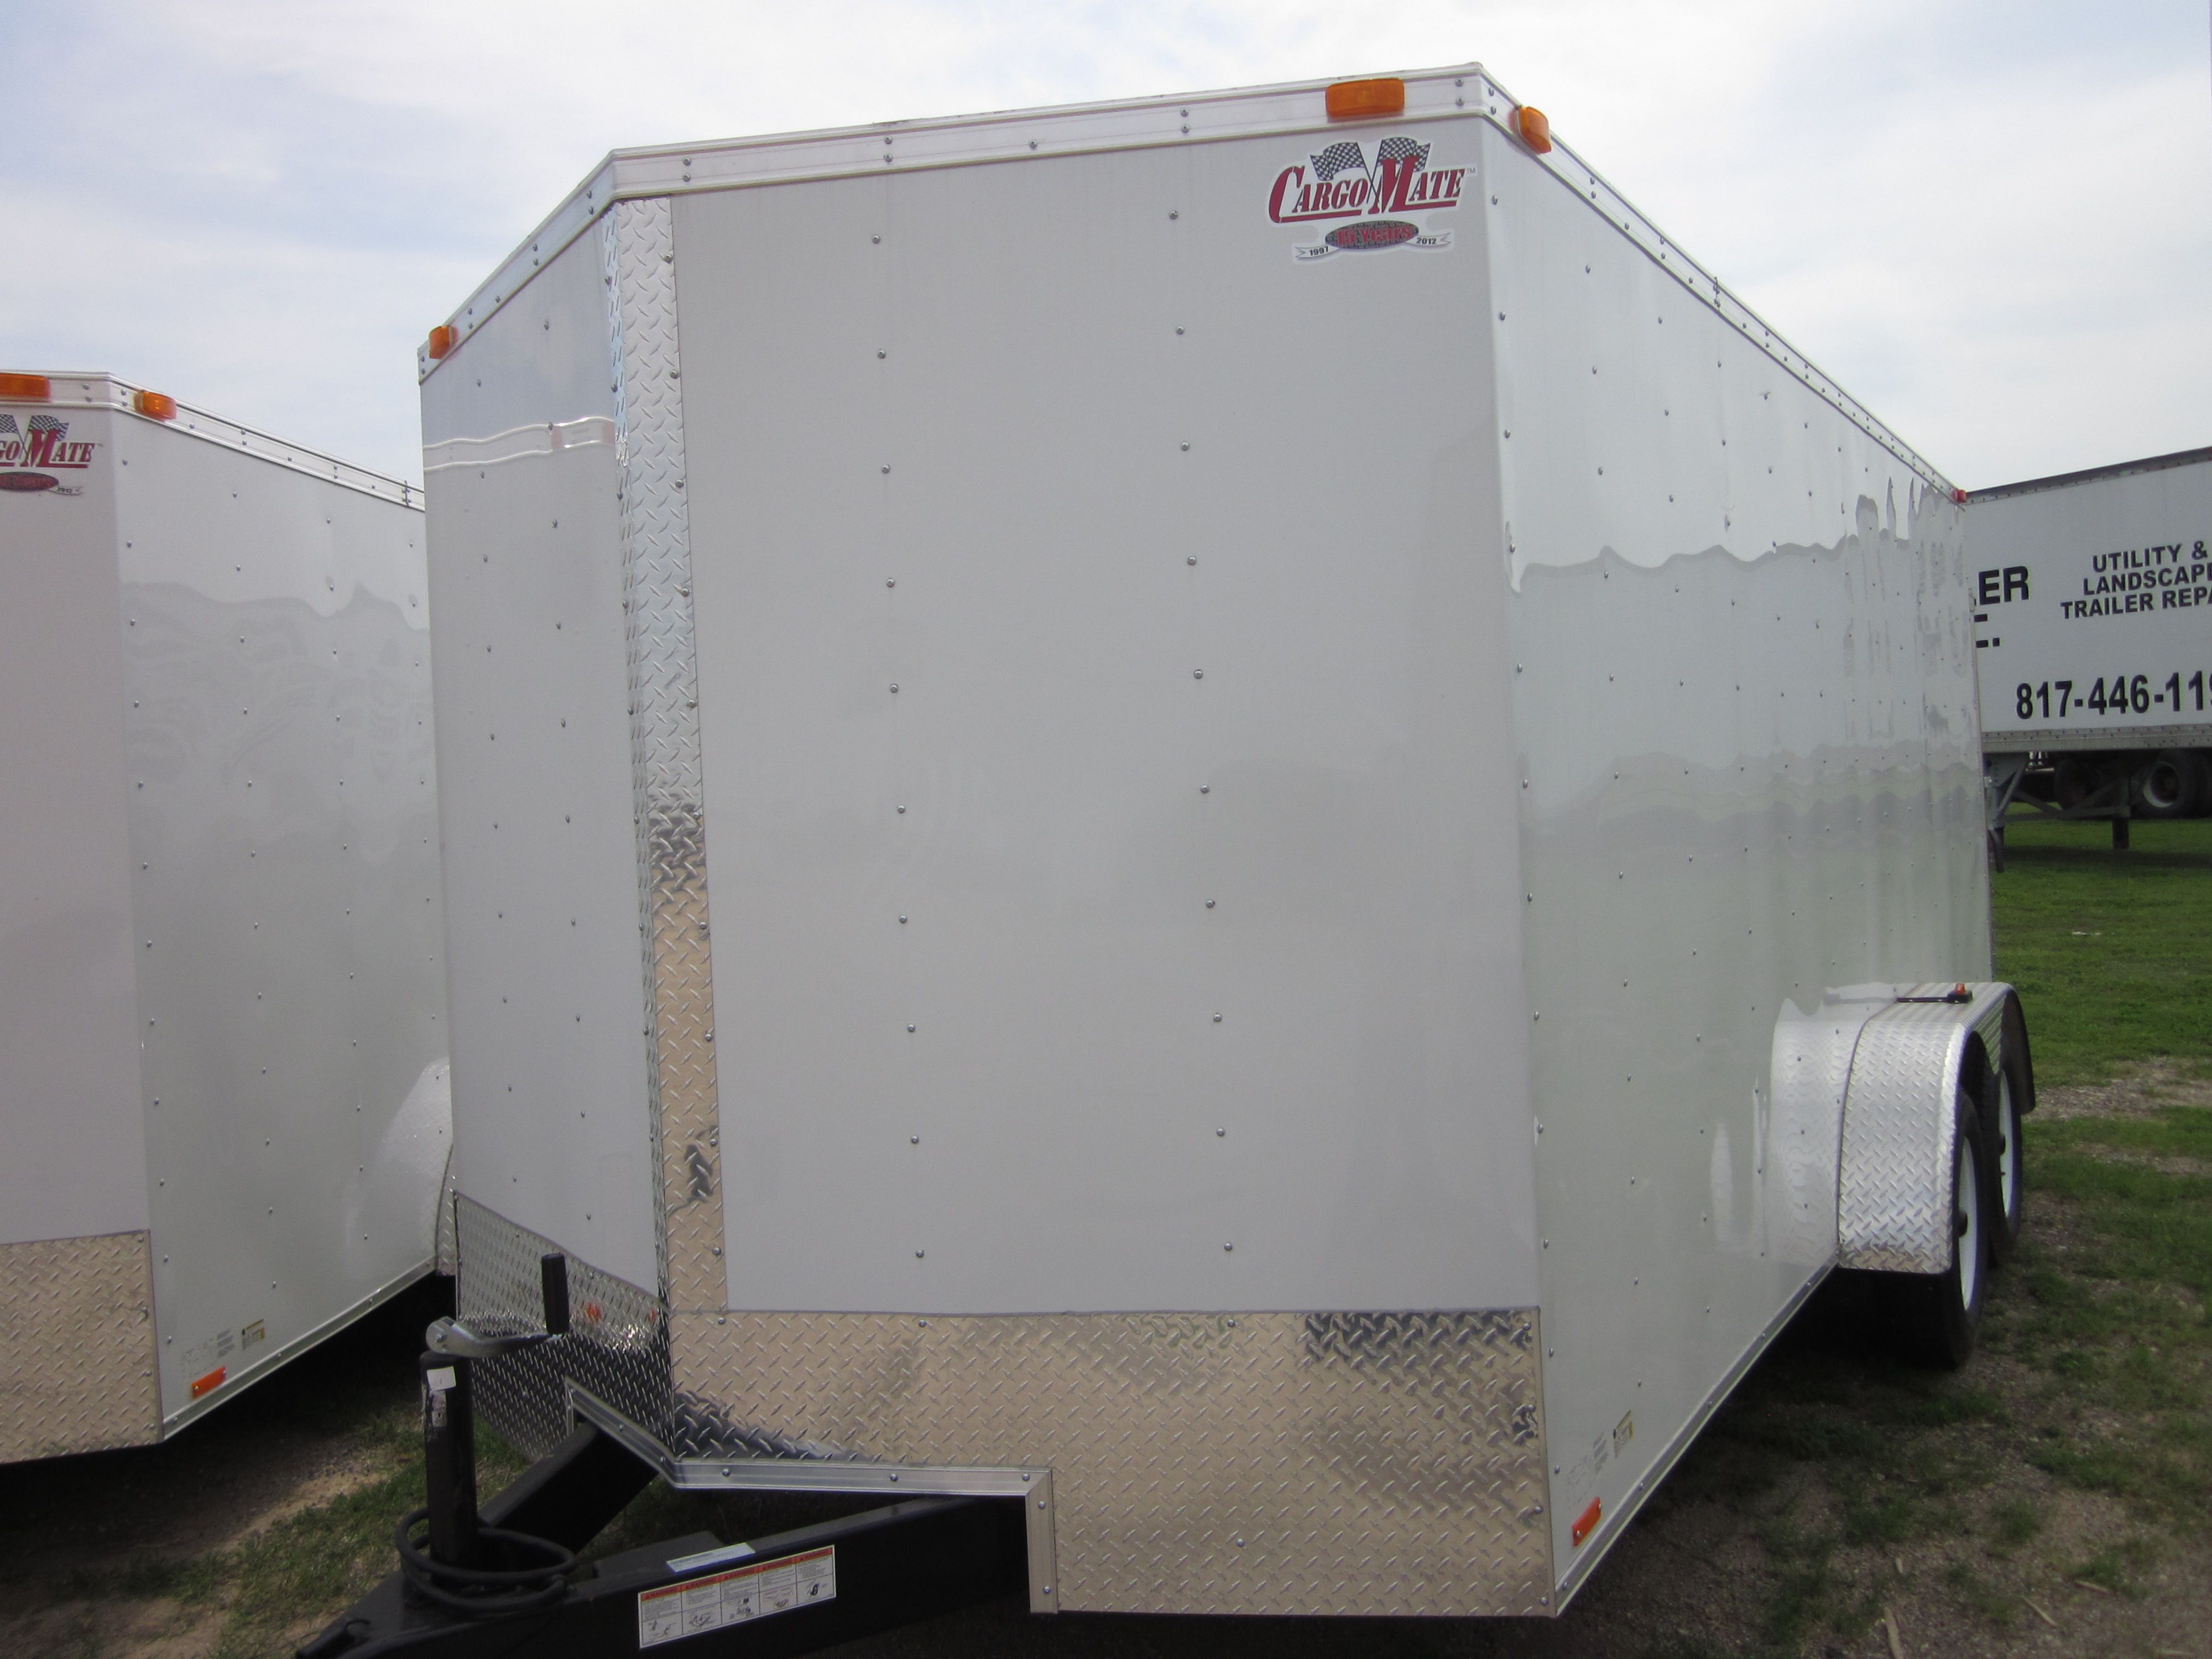 18' Tandem Axle Trailer http://www.worthtrailer.com/2013-enclosed-18-tandem-axle-trailer